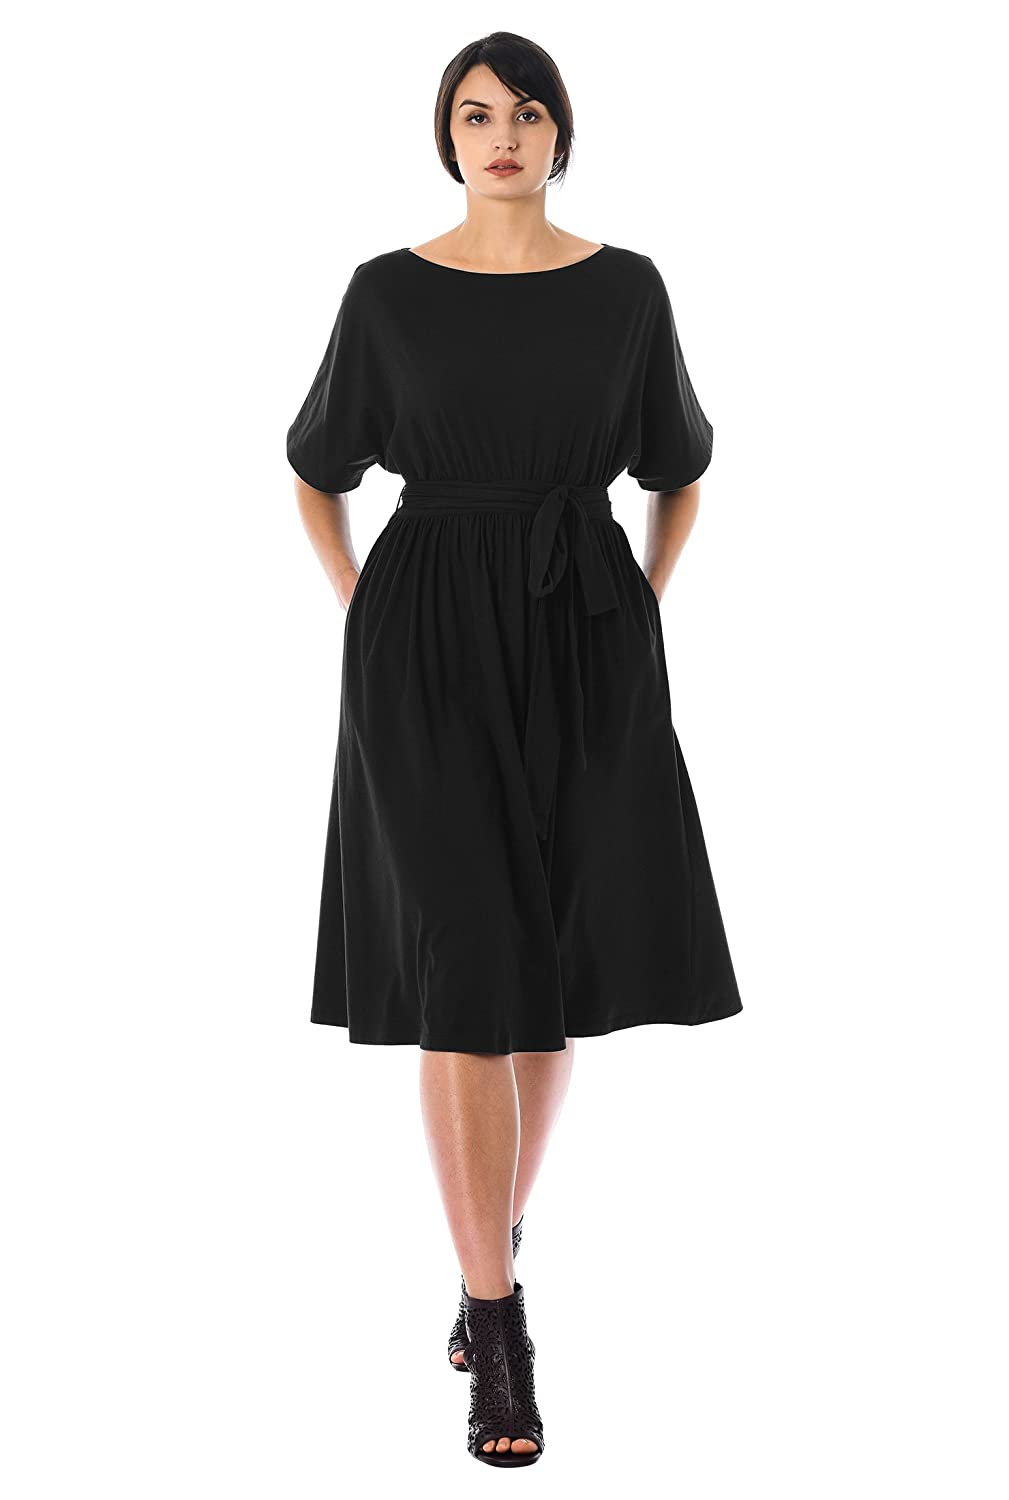 0a2d8fc4f51 Top 10 wholesale Plus Size Blouson Dress - Chinabrands.com